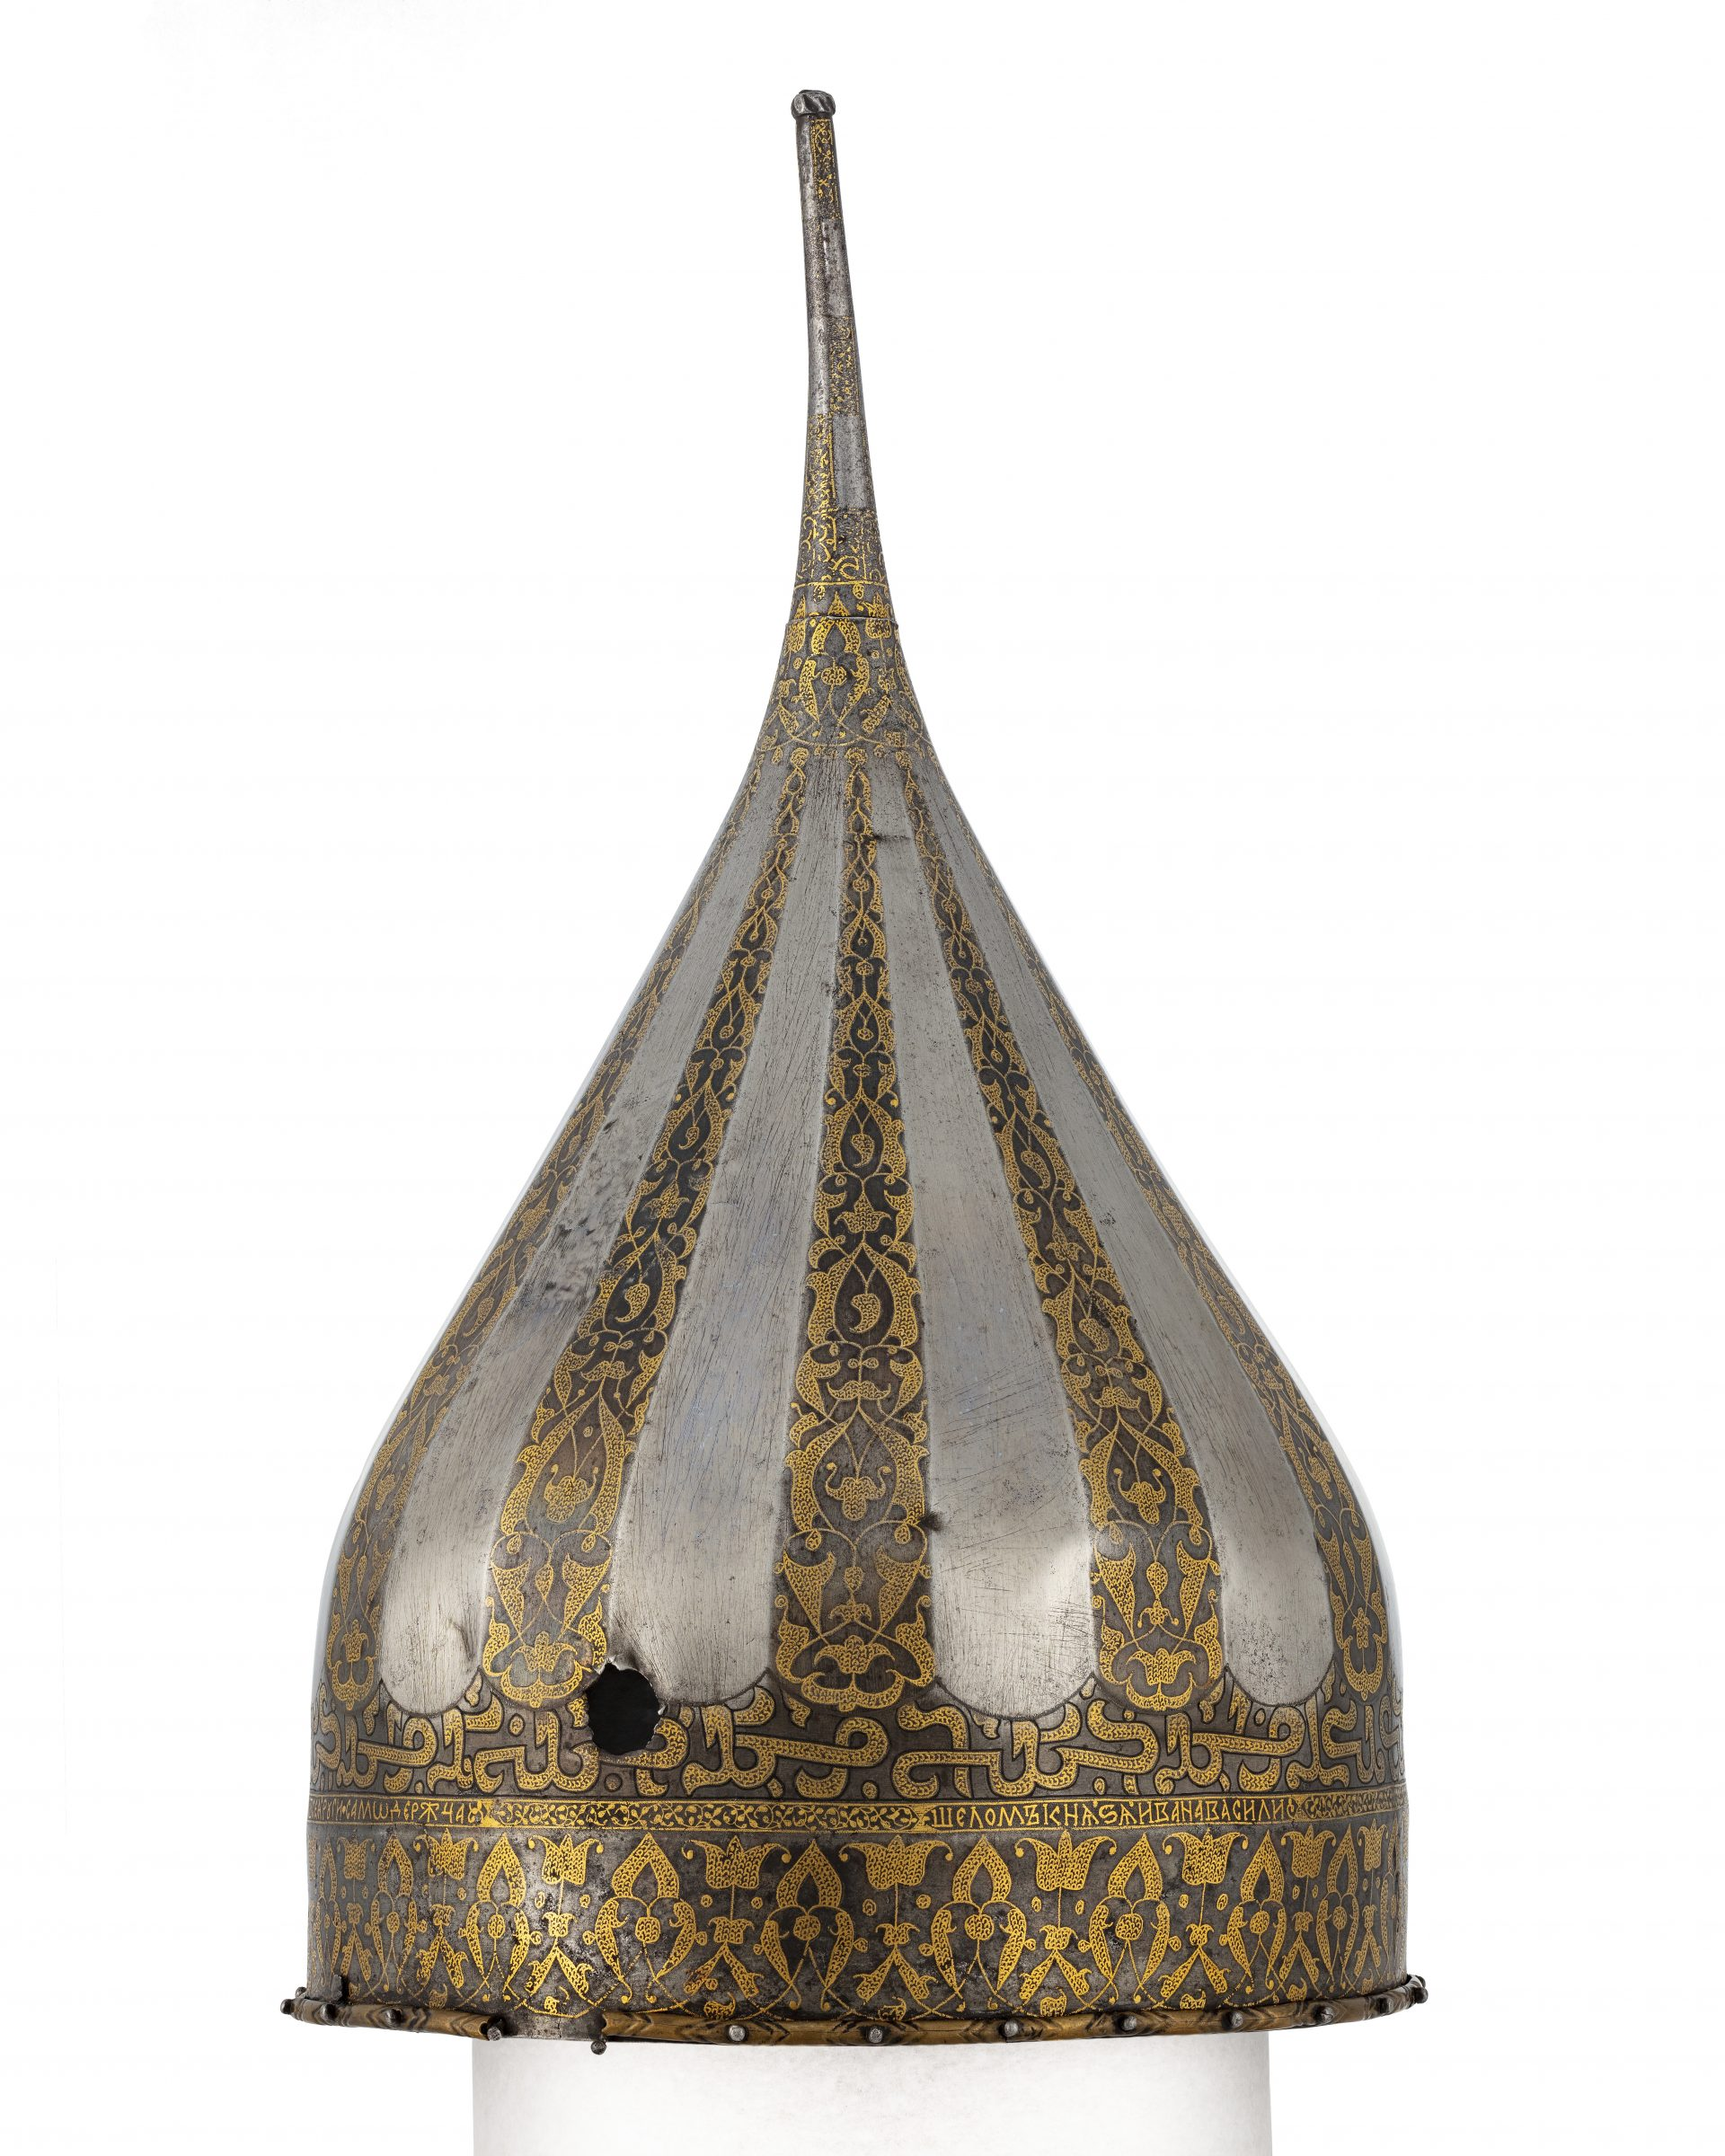 A spiked helmet of steel with gold ornaments.